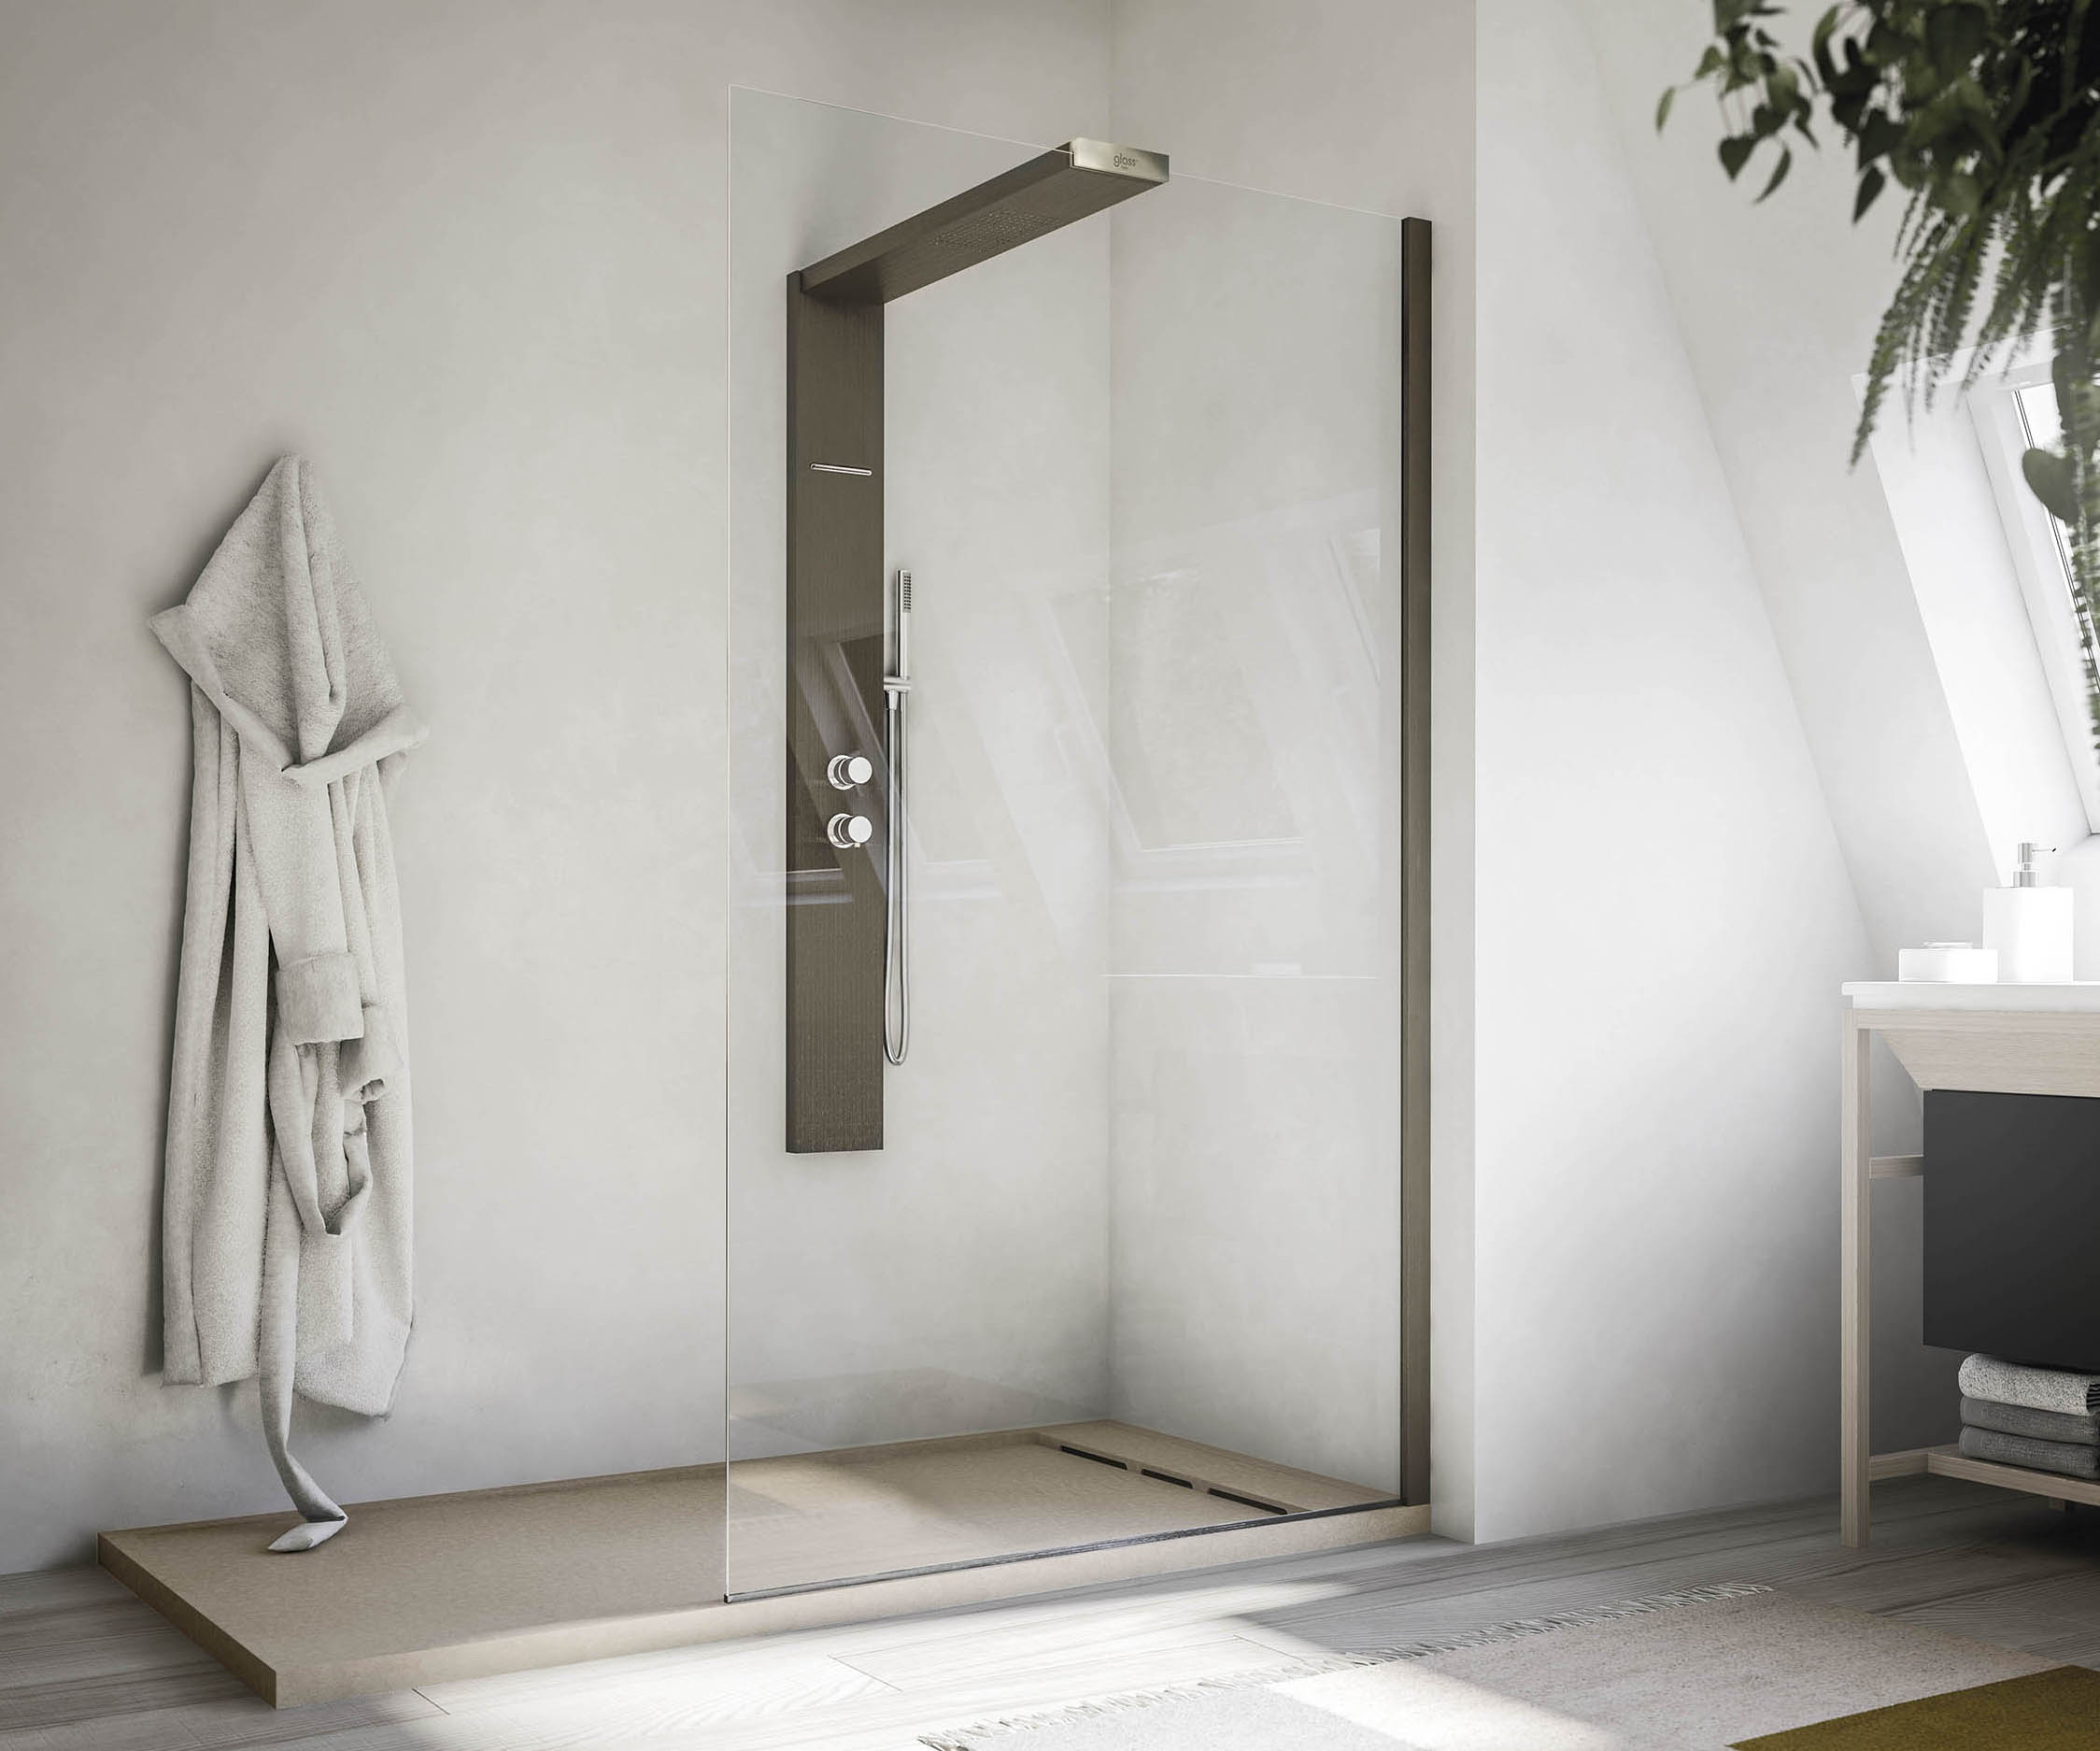 libera lk0 Glass 1989 shower enclosure